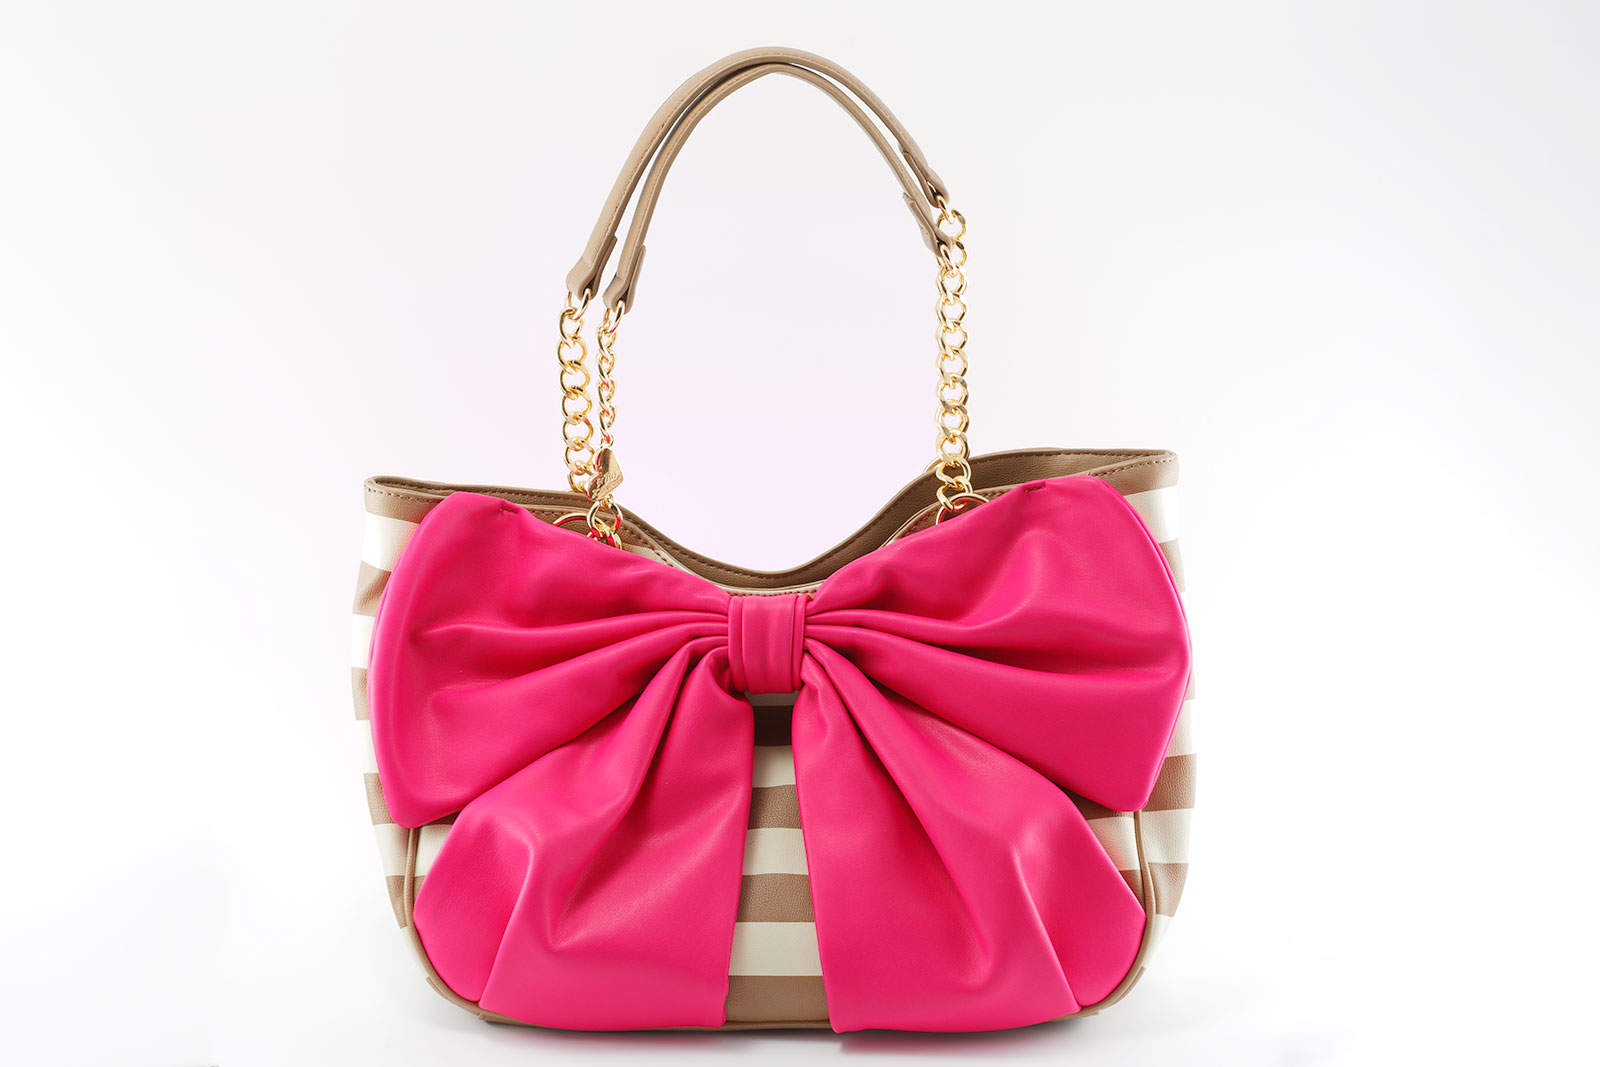 Betsey Johnson Handbag Pink Bow